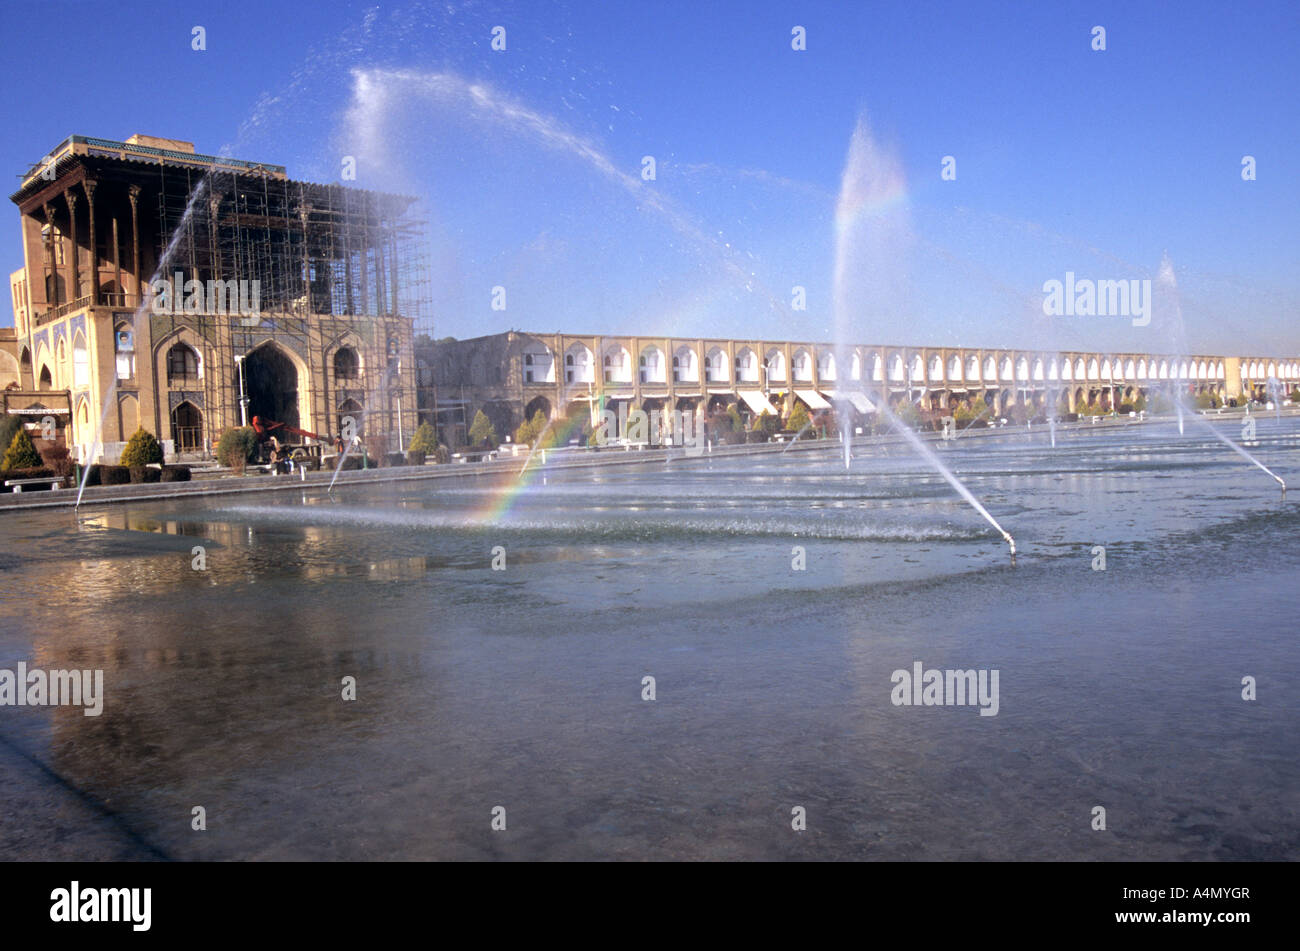 Ali Qapu palace in the Naghsh-i Jahan Square in Isfahan, the 2nd largest square in the world, Iran Stock Photo